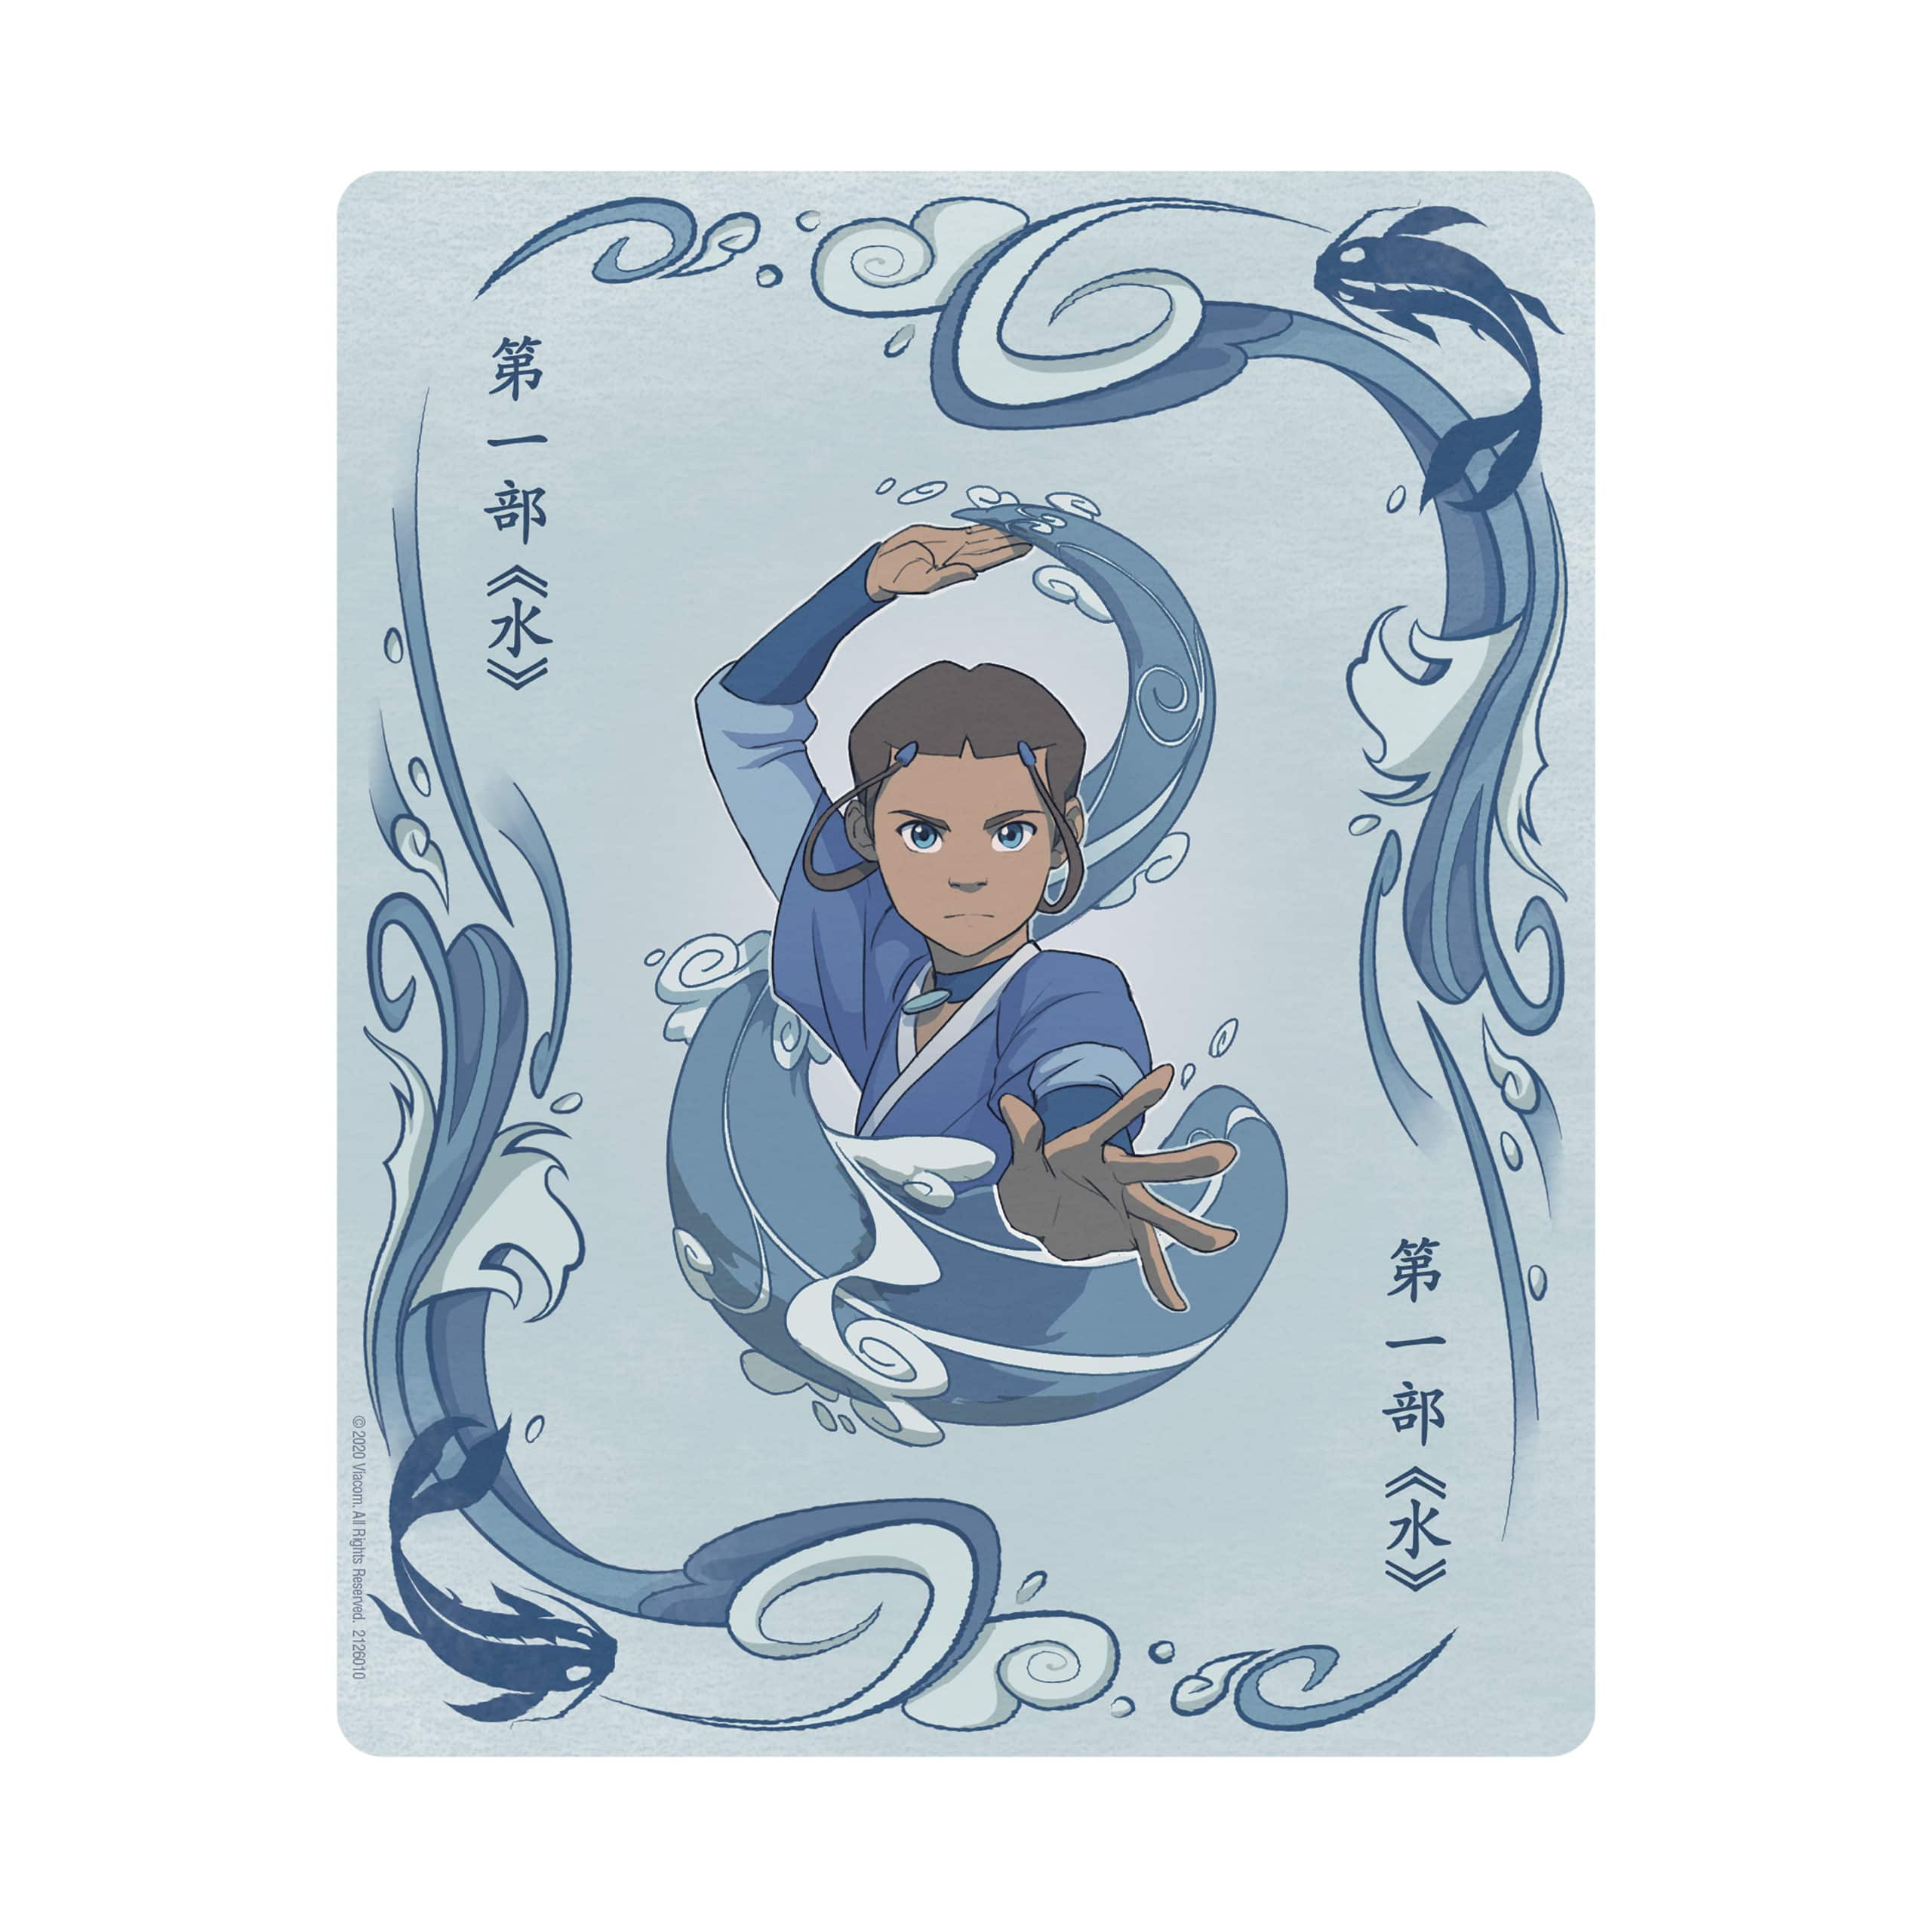 Avatar The Last Airbender Katara. Nickelodeon's critically-acclaimed, Emmy® award-winning series receives the SteelBook® treatment as Avatar: The Last Airbender – The Complete Series Blu-ray 15th Anniversary Limited Edition Steelbook Collection arrives on February 18, 2020.